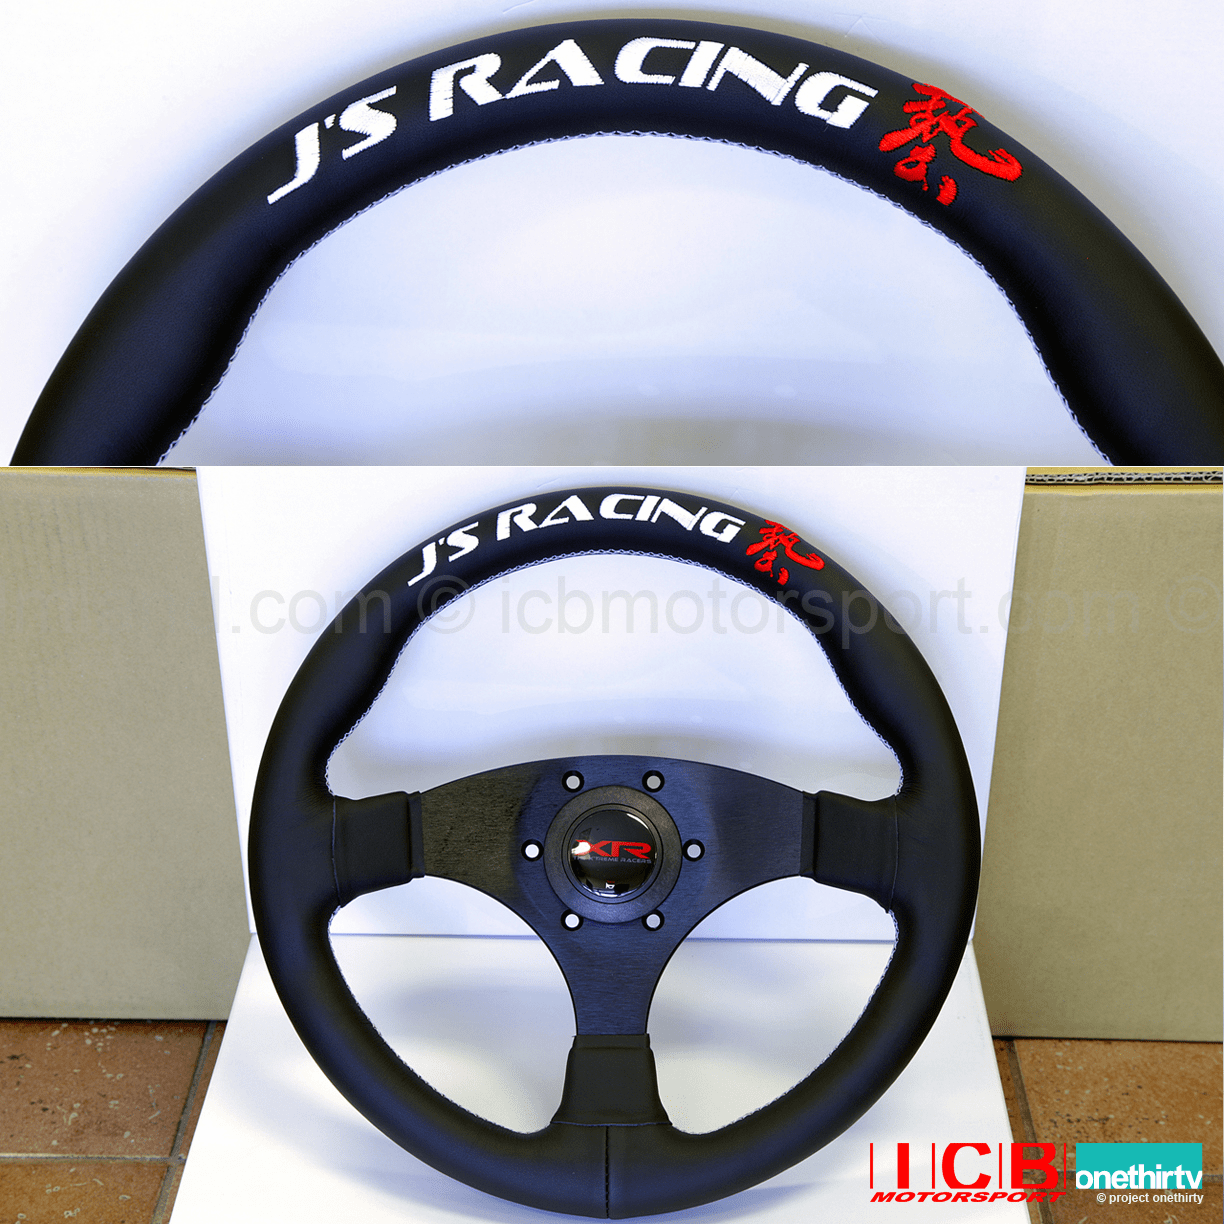 J'S RACING XR Steering Type-F Leather US version